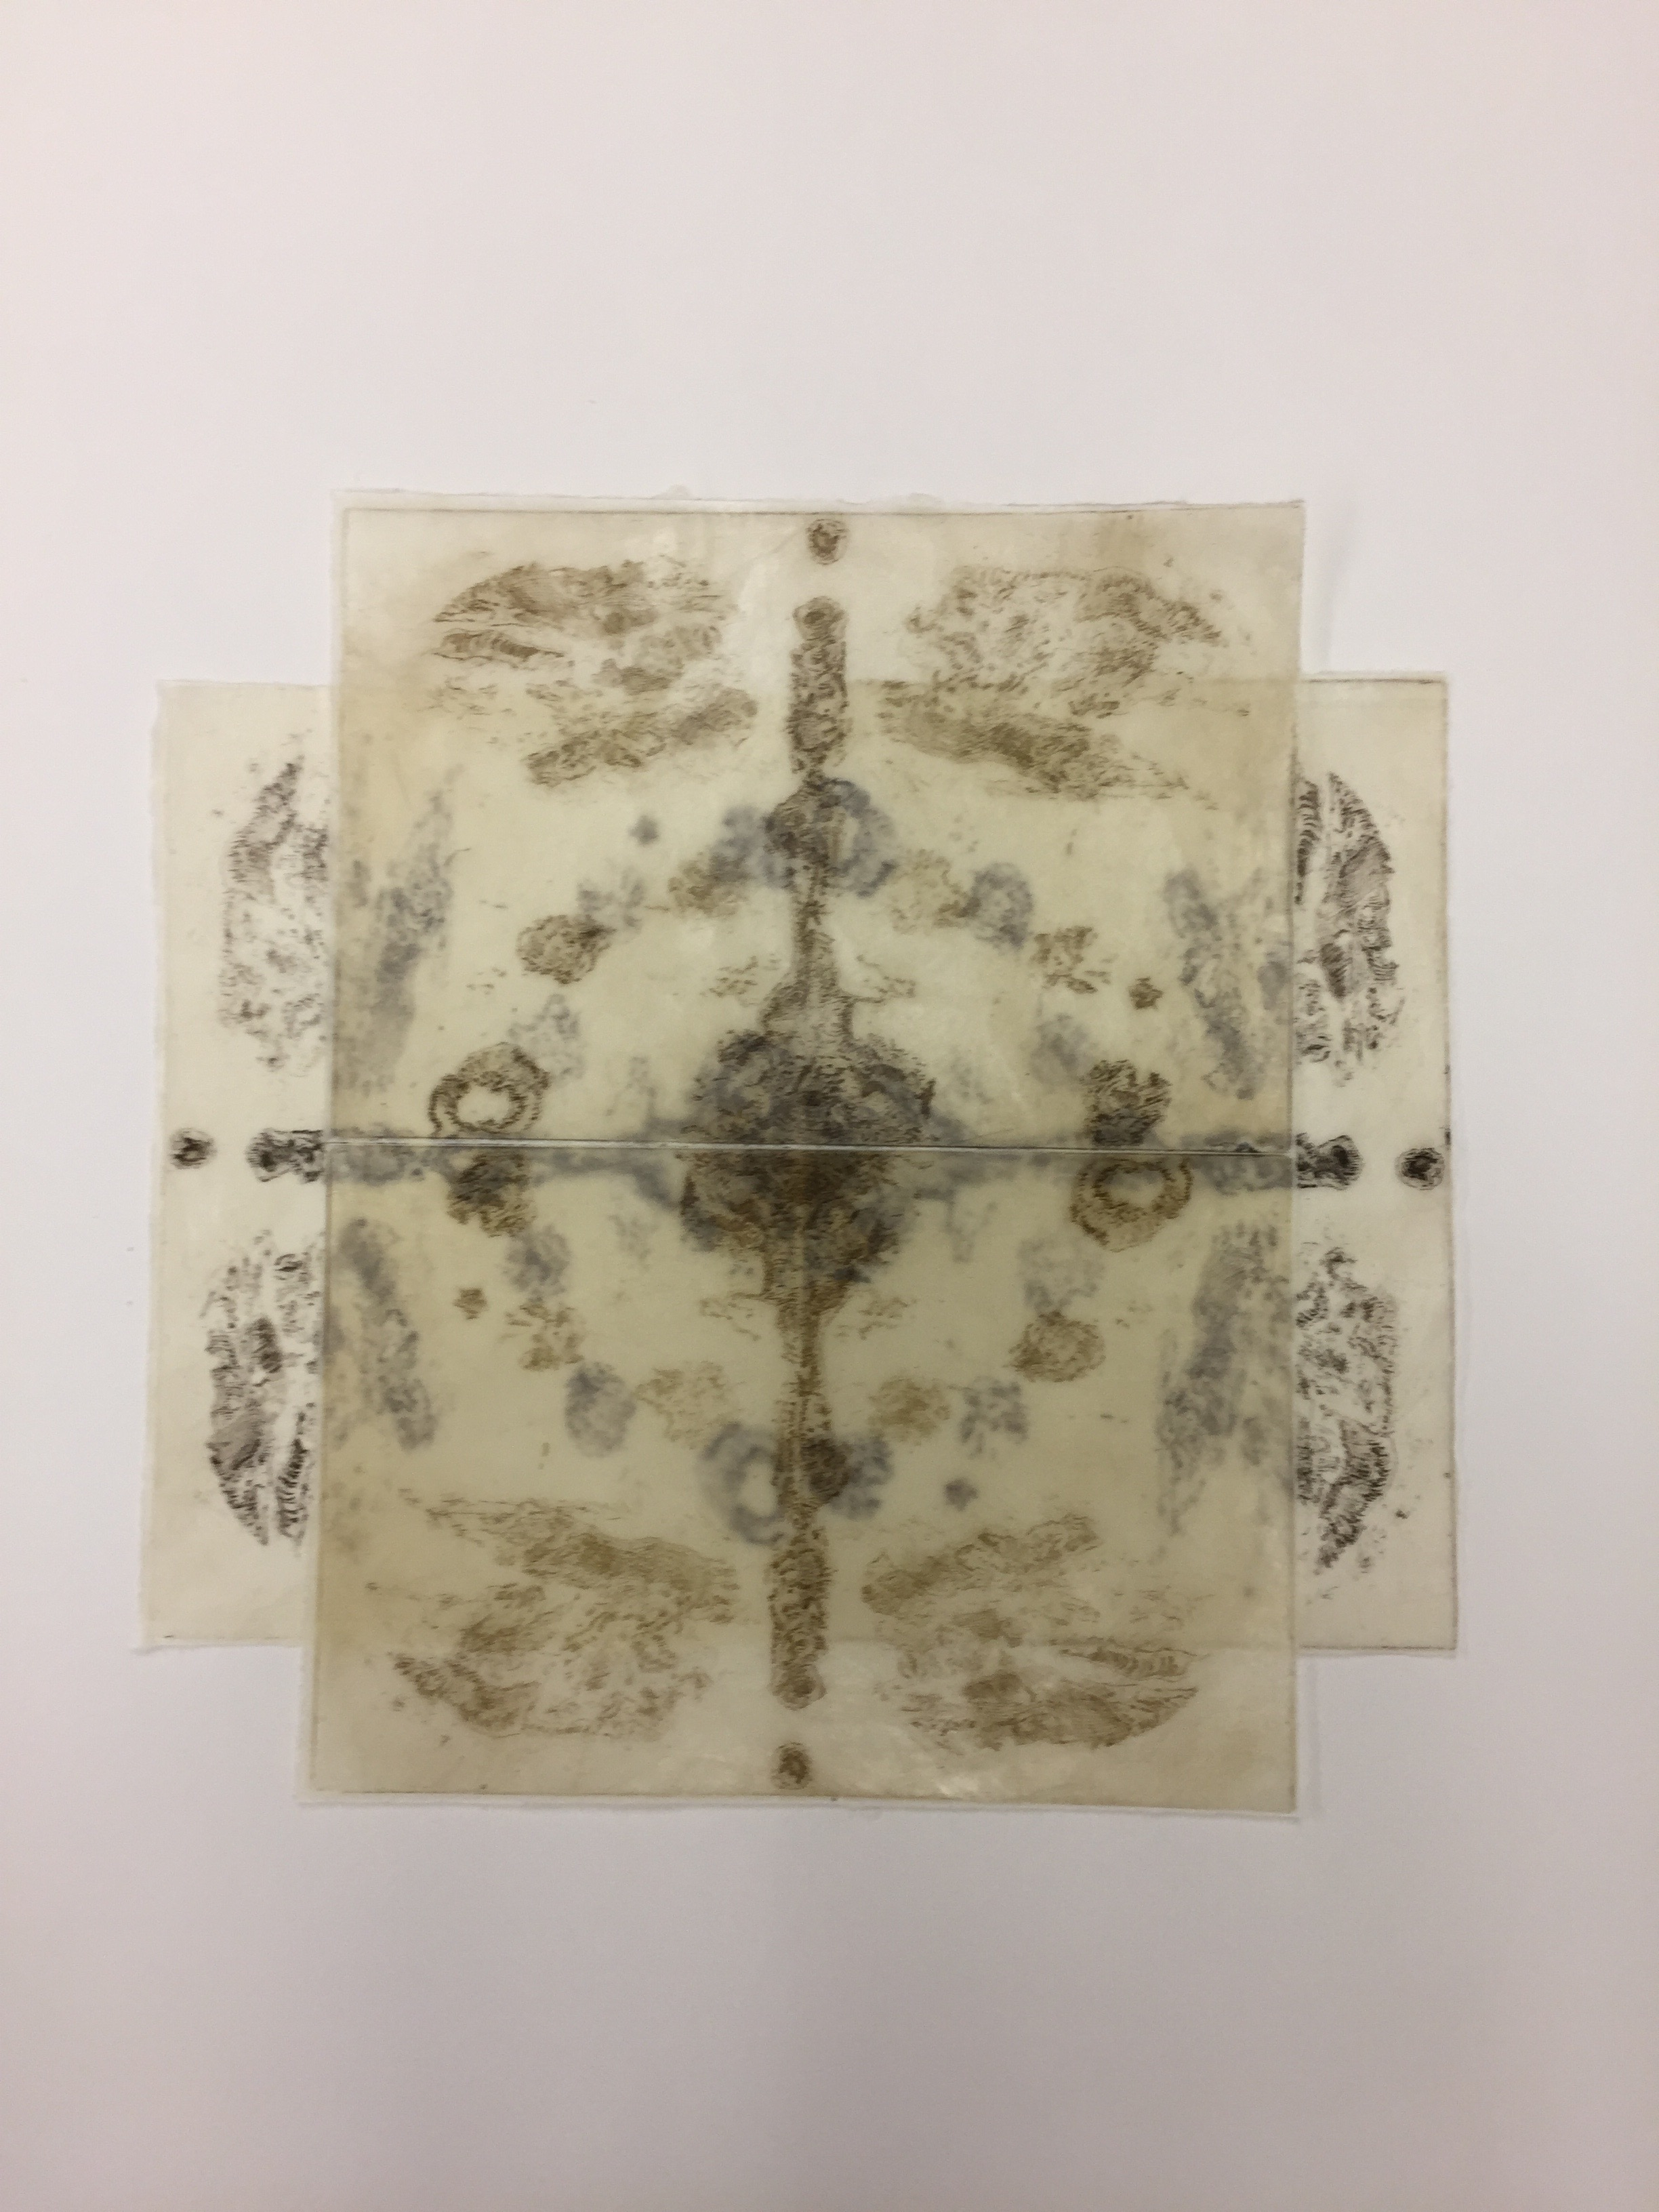 Etching on rice paper and wax